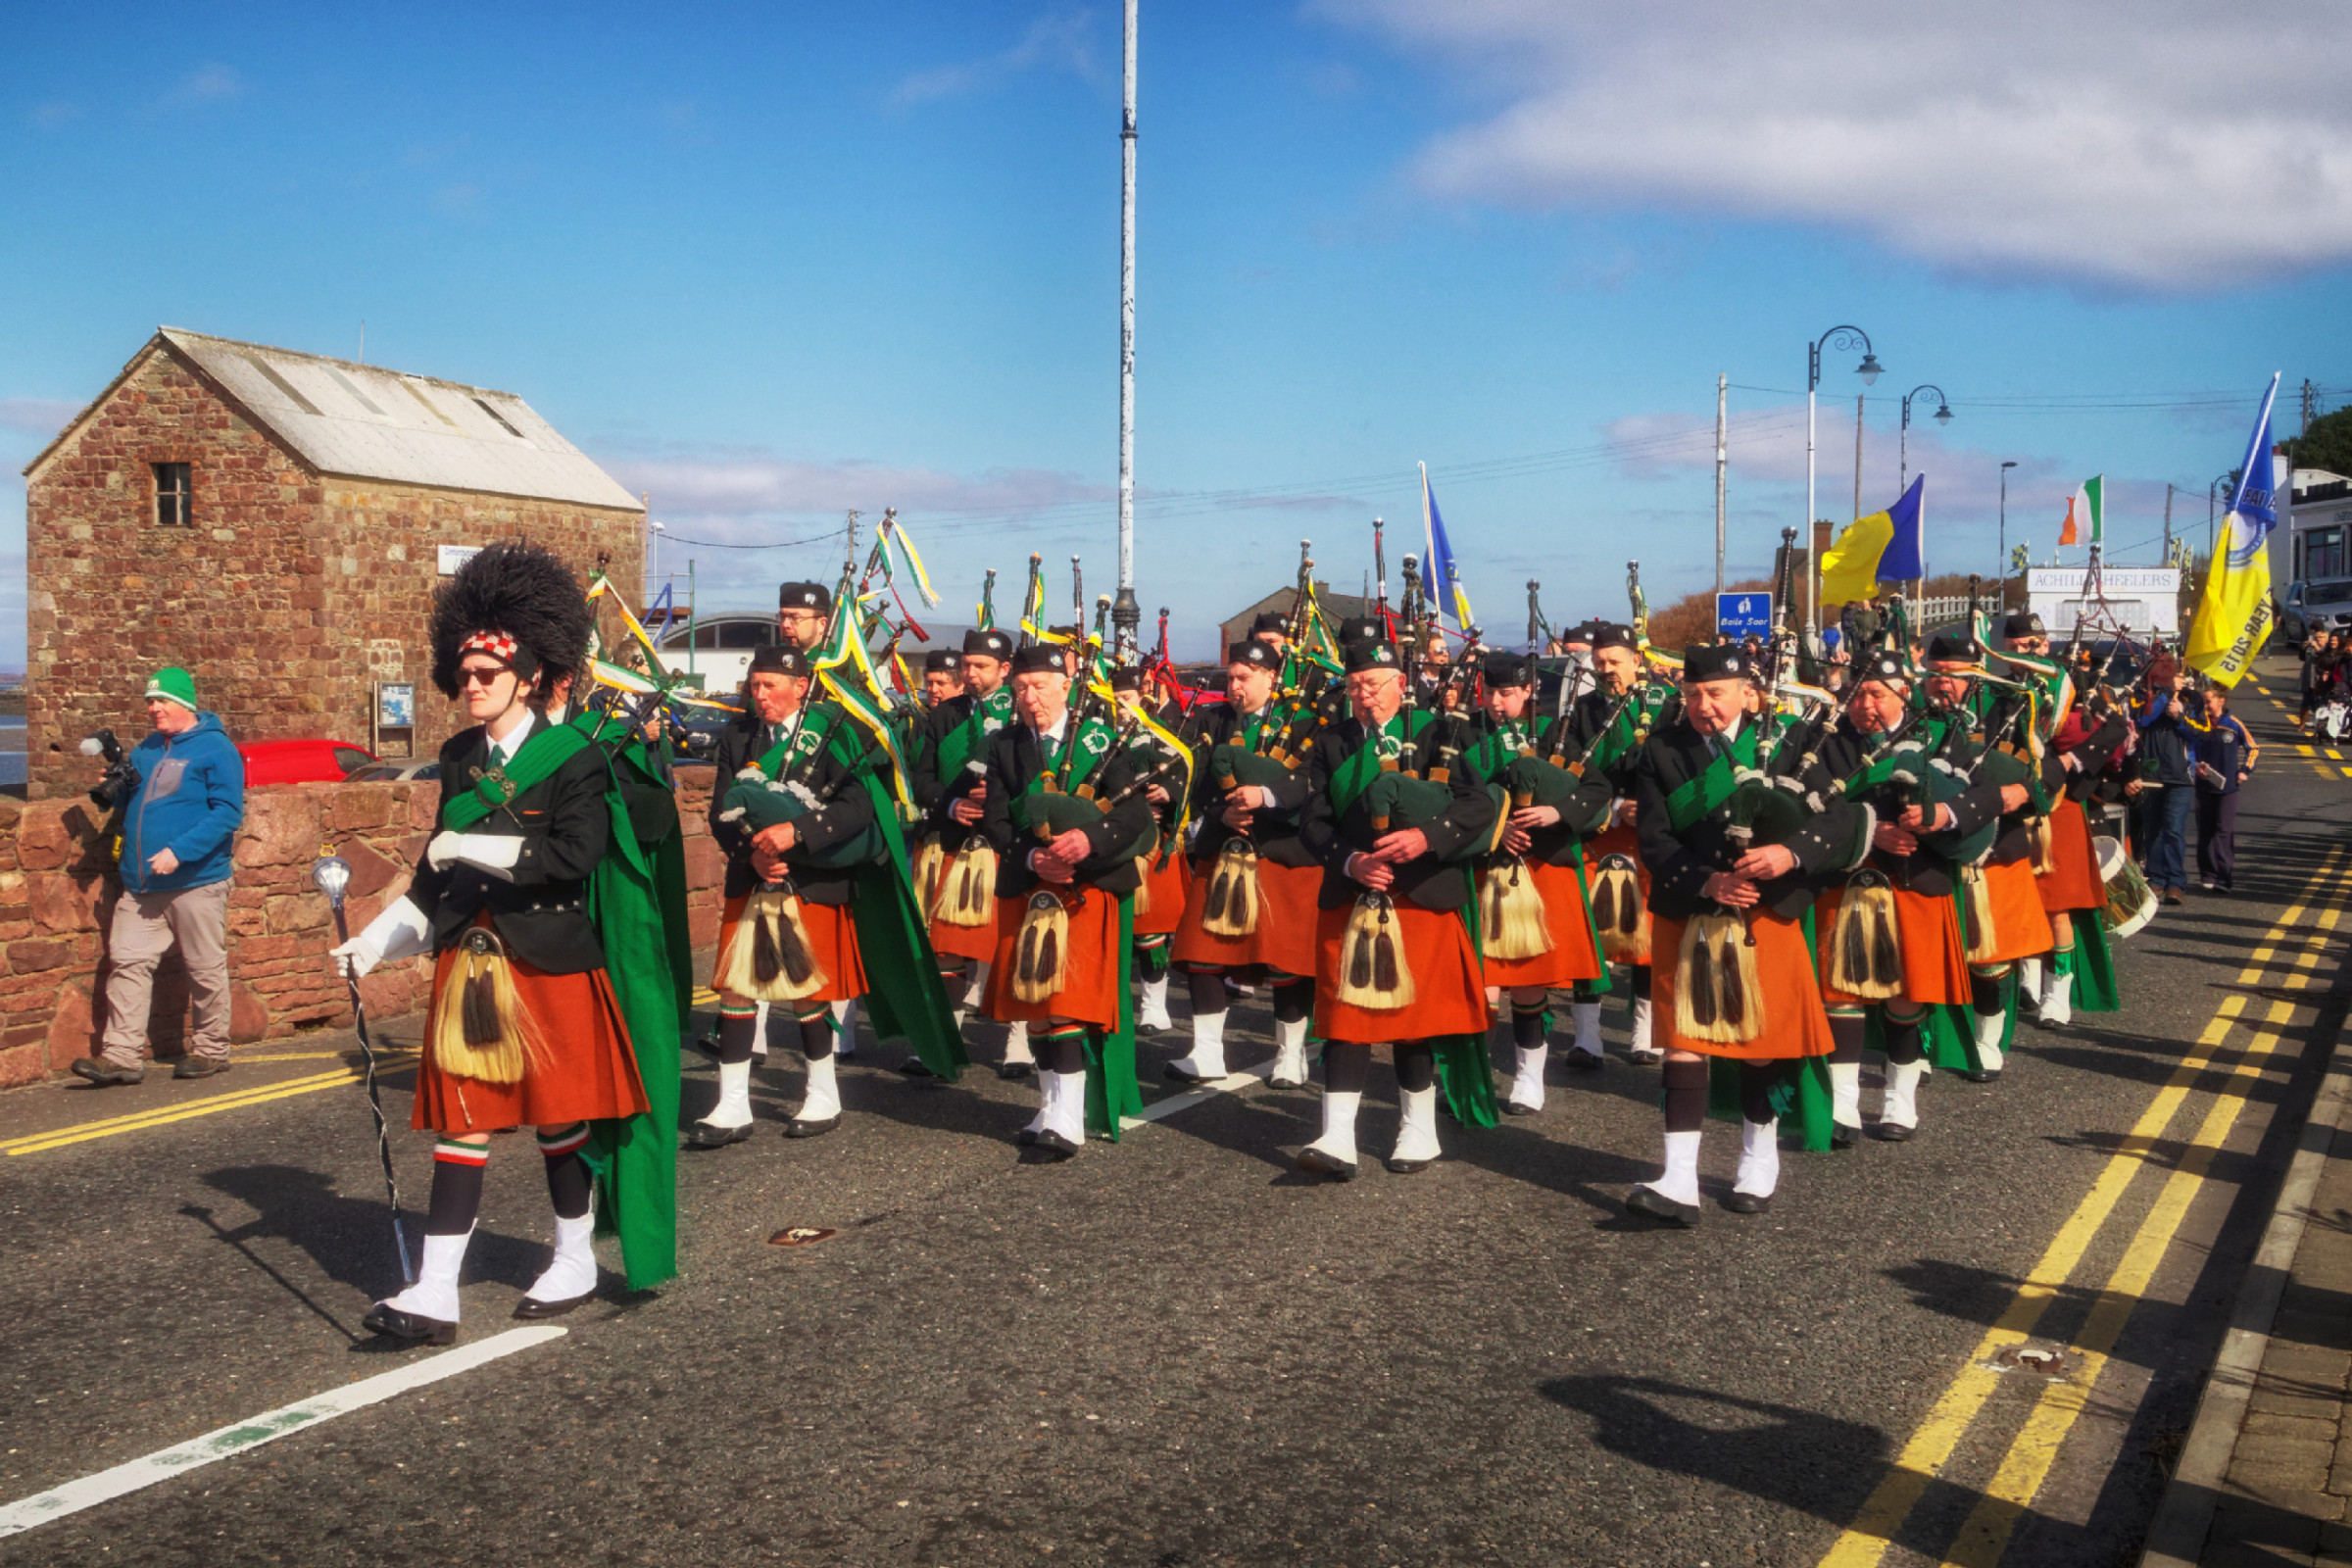 20160320125644-ie-achill-sound_parade-_DxO_13in_DxO96